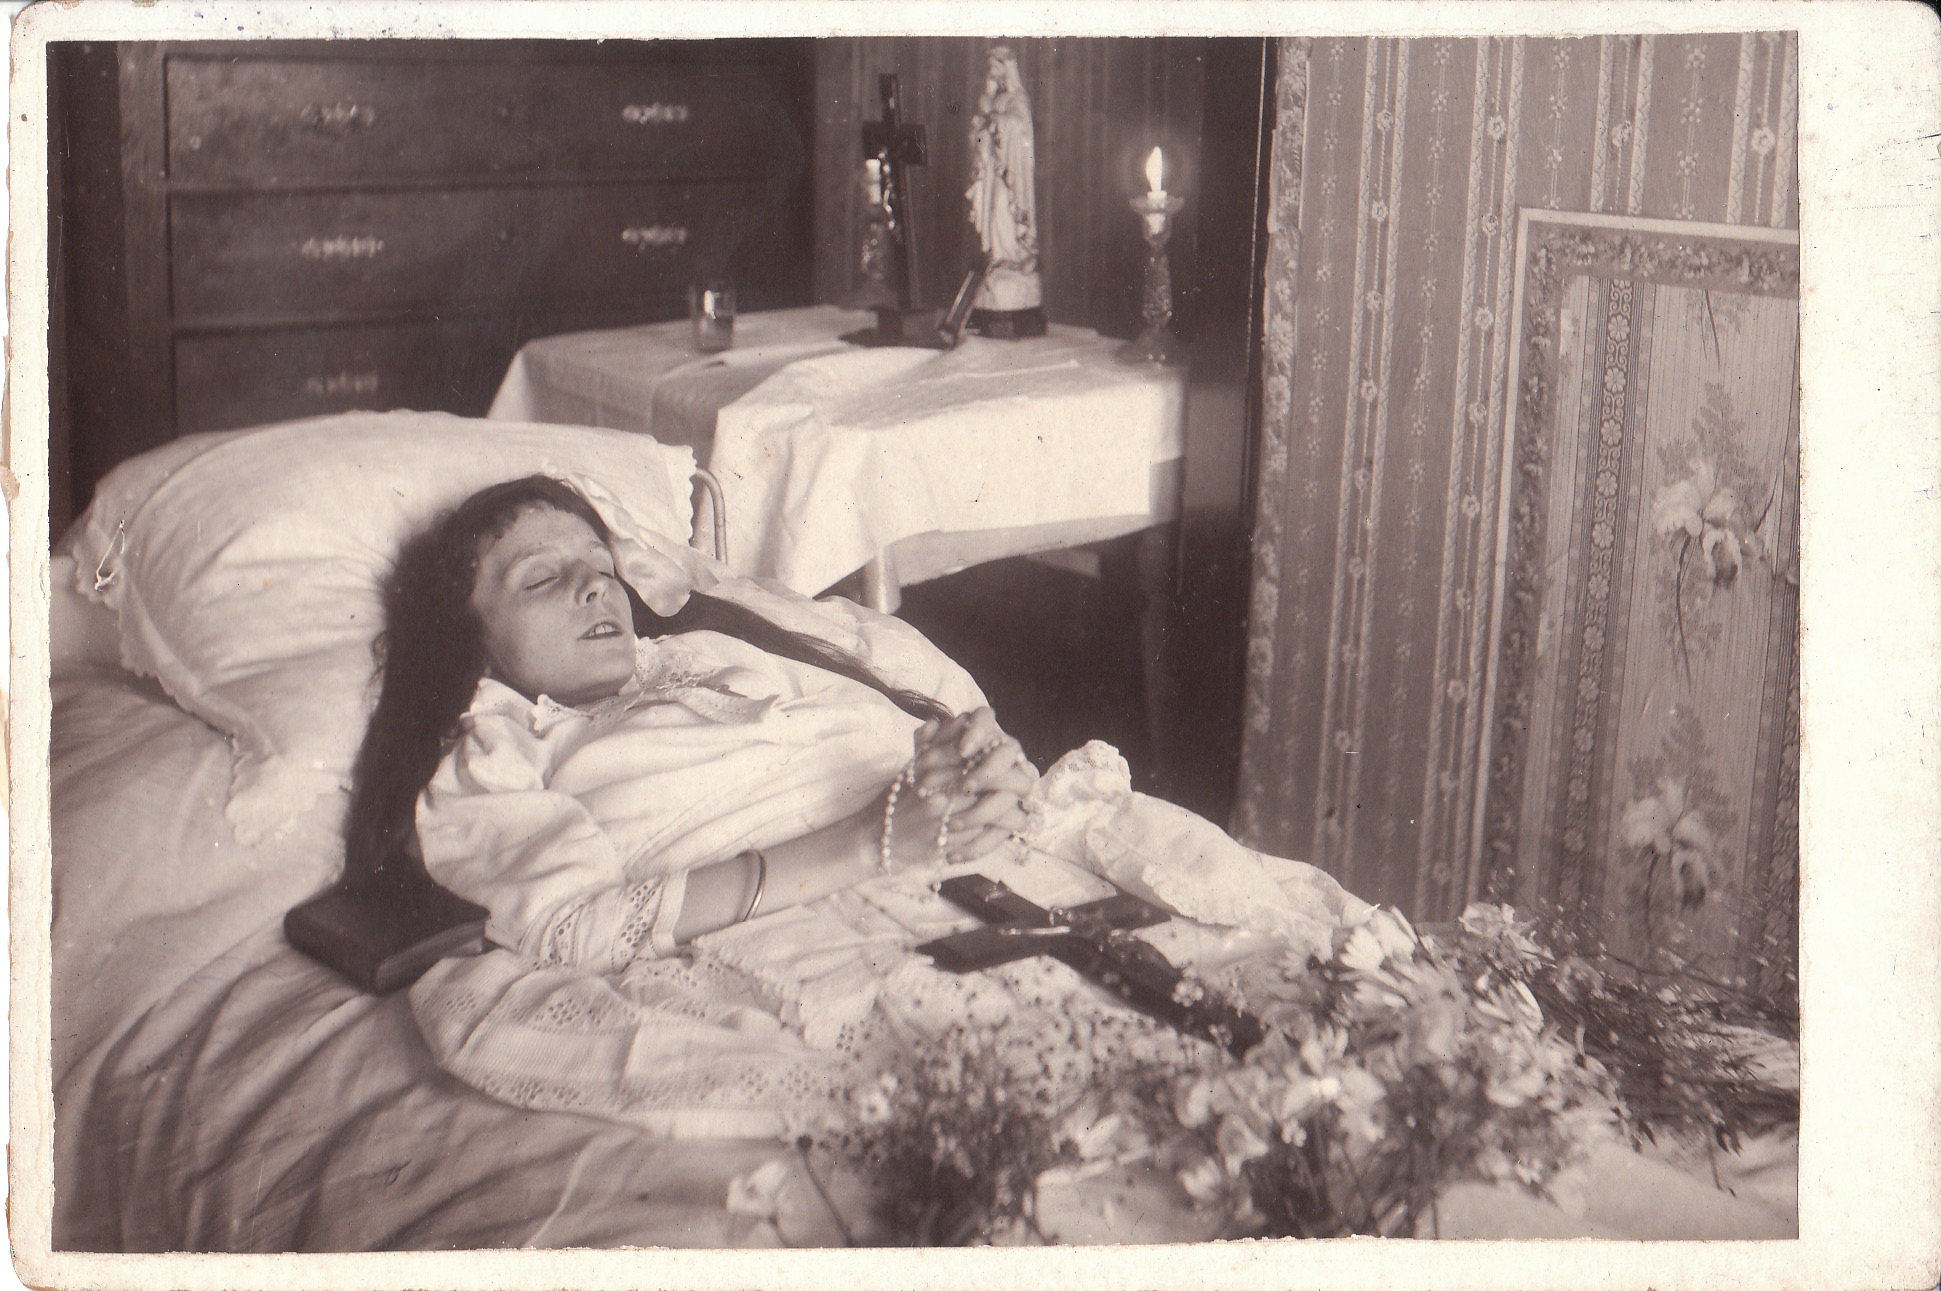 POSTMORTEM PHOTOGRAPH OF YOUNG GIRL IN PARIS, FRANCE | THE ...